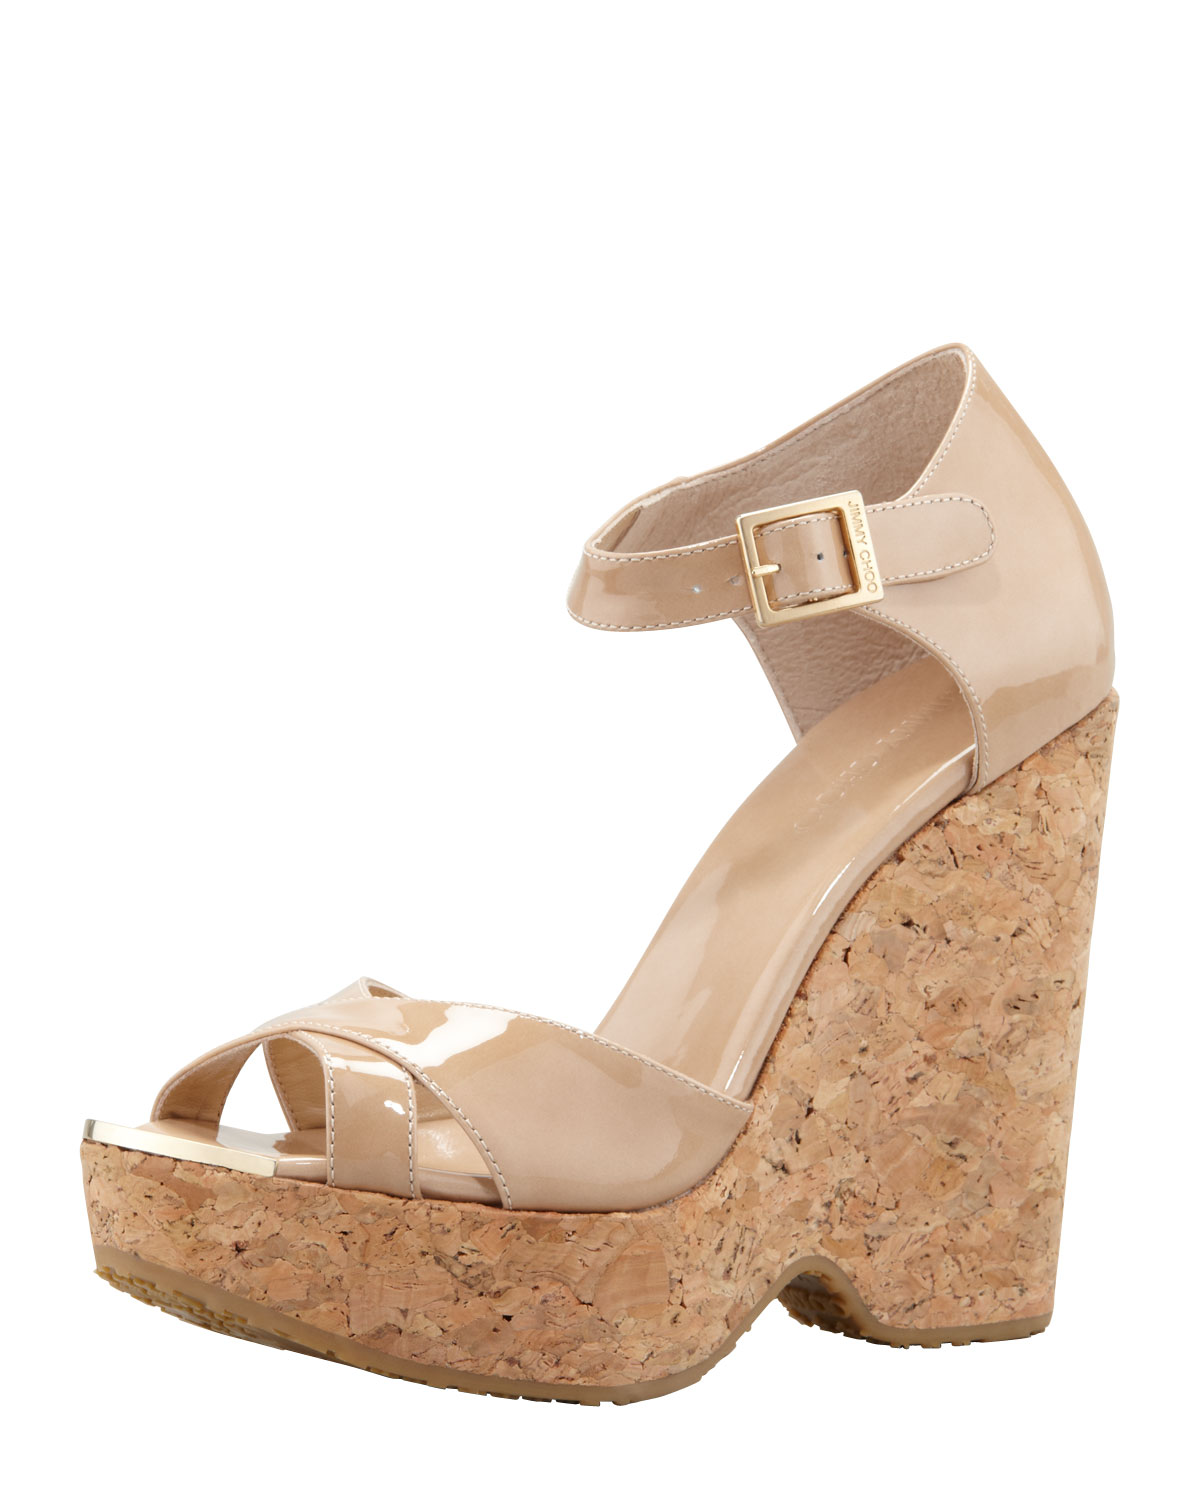 a21889b4c21 Lyst - Jimmy Choo Pape Patent Wedge Sandal Nude in Natural